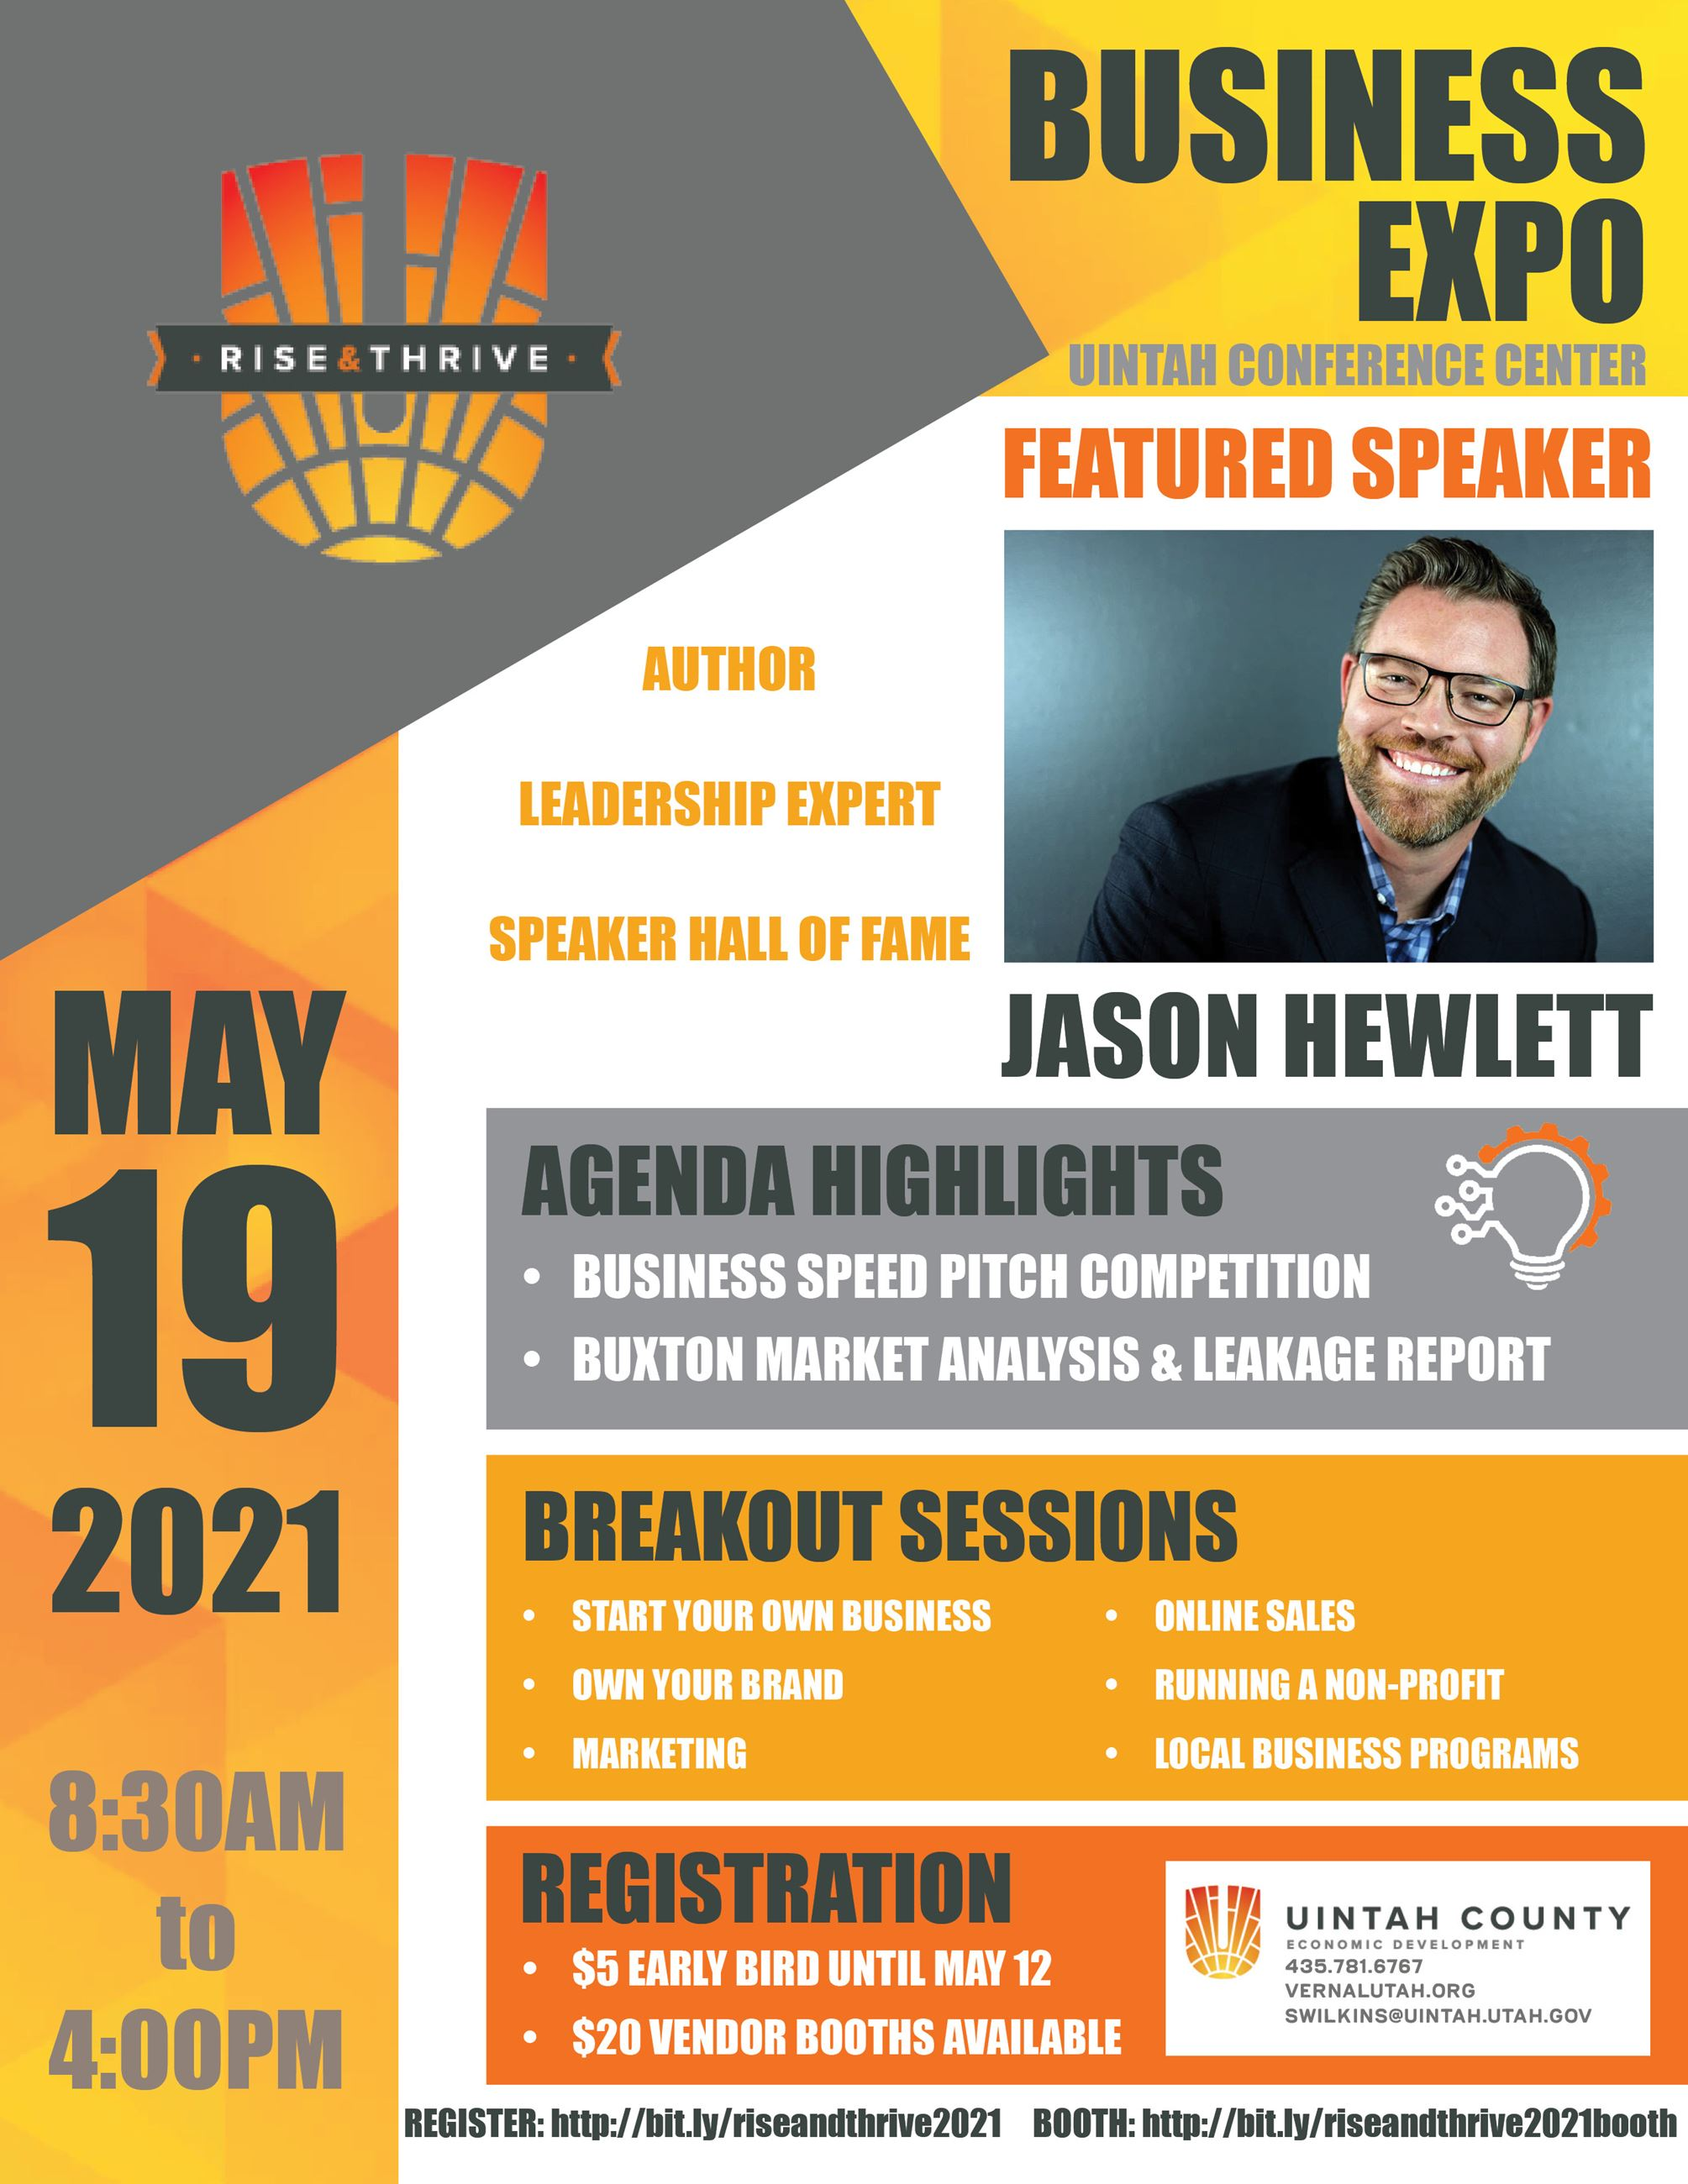 Business Expo 2021